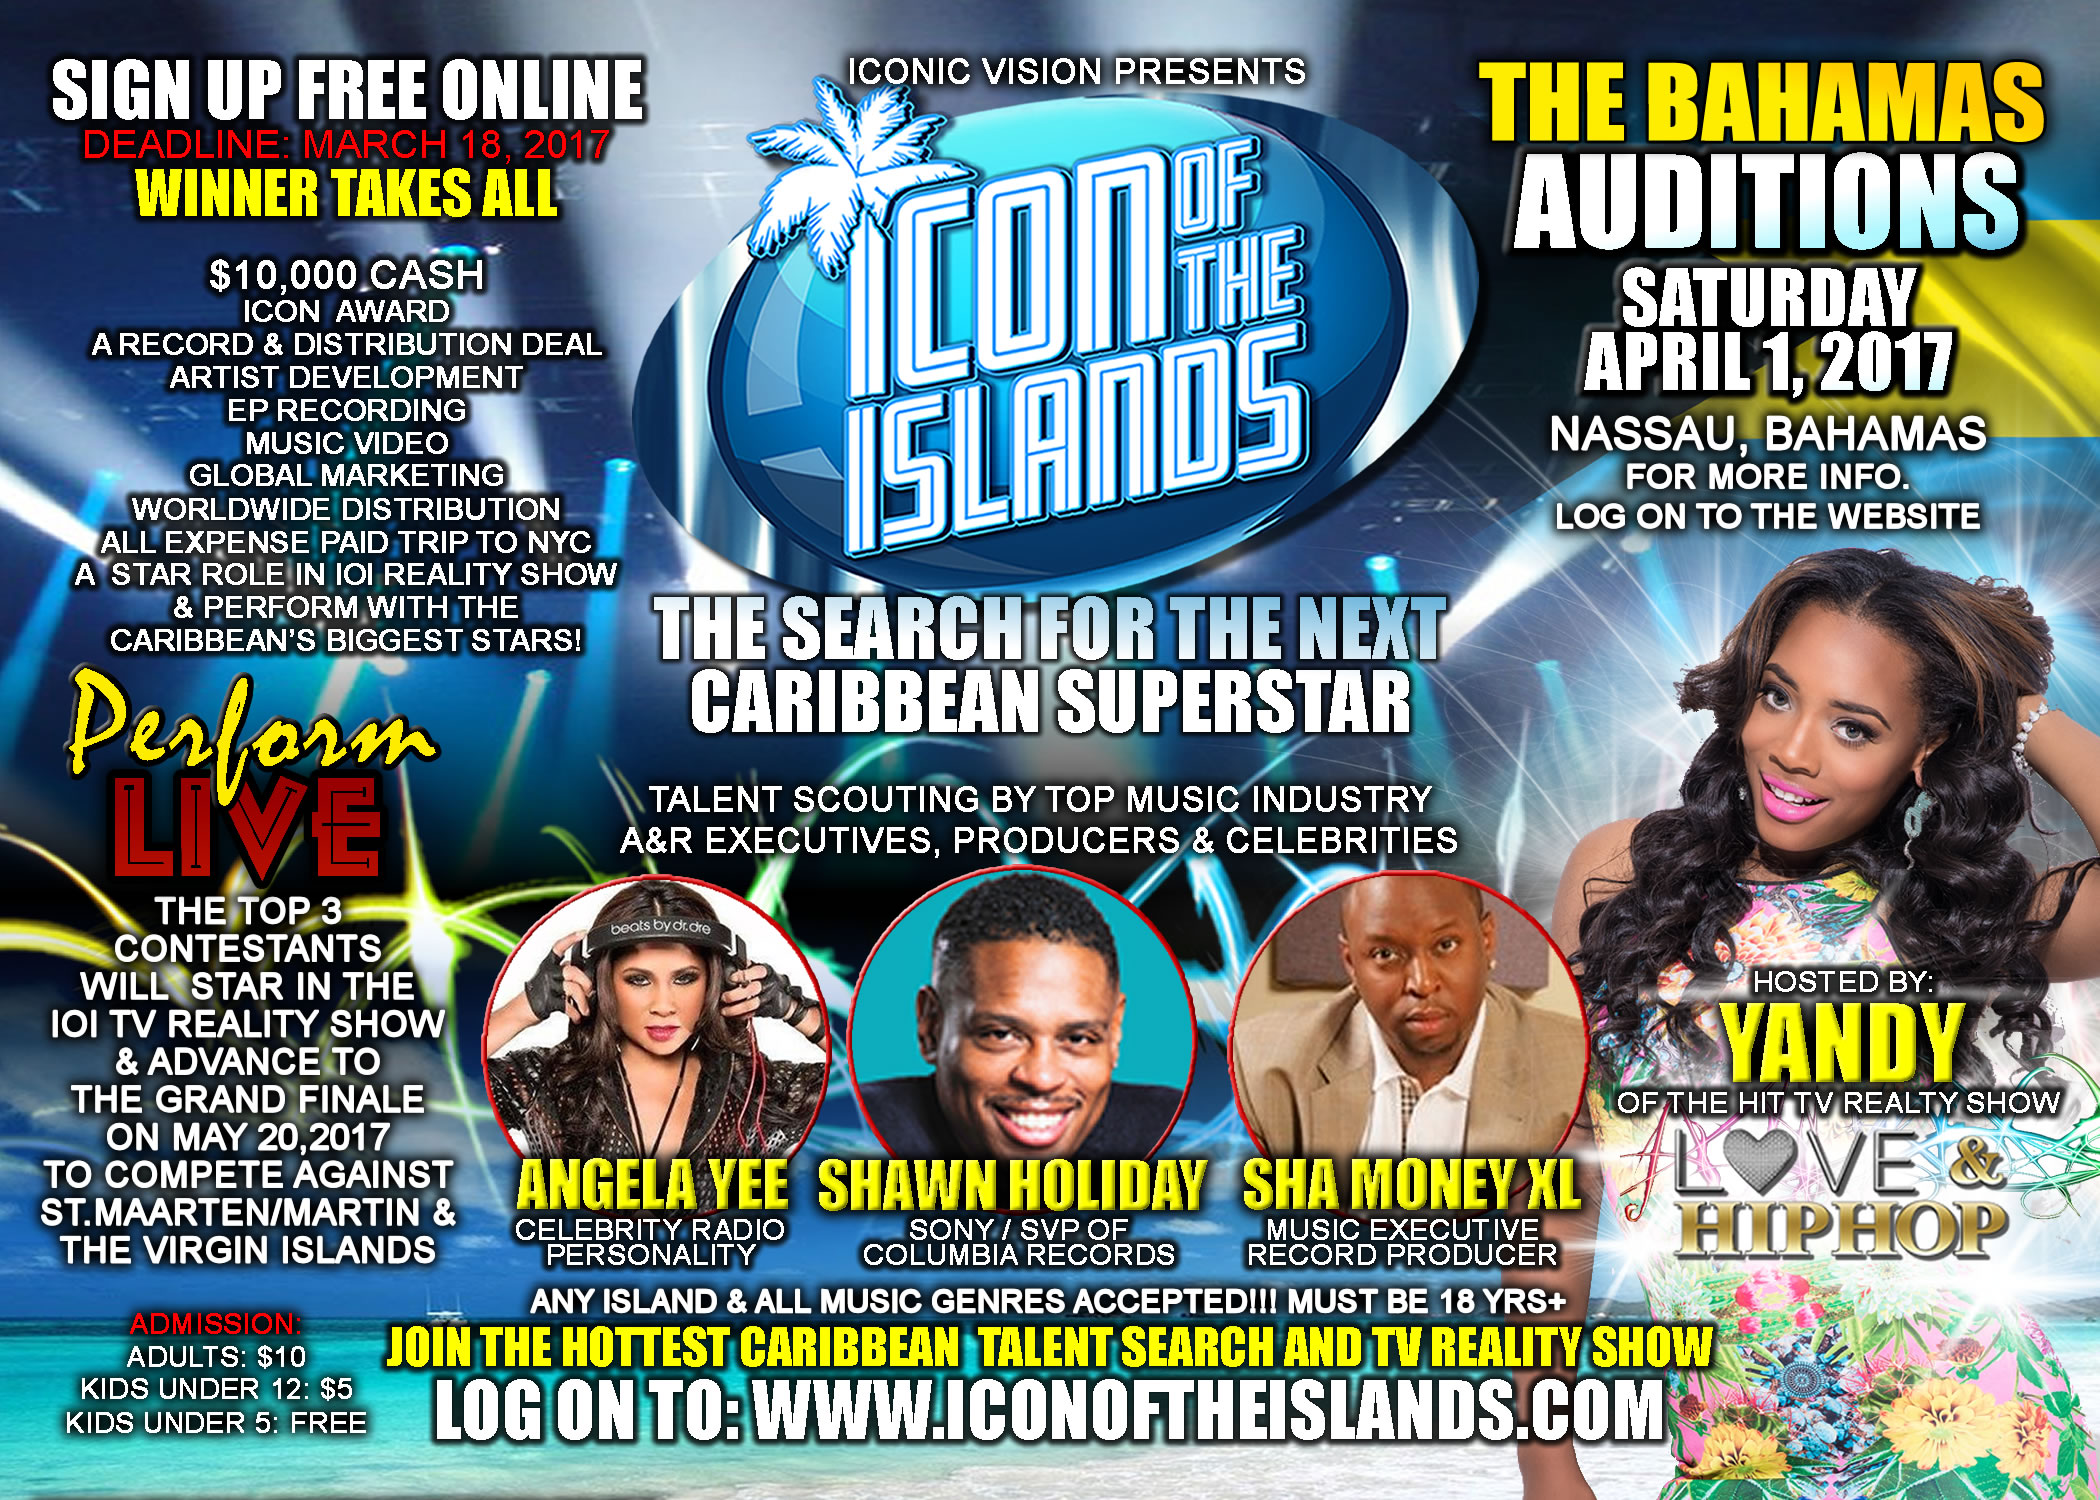 Bahamas Auditions 2017 - Icon of the Islands